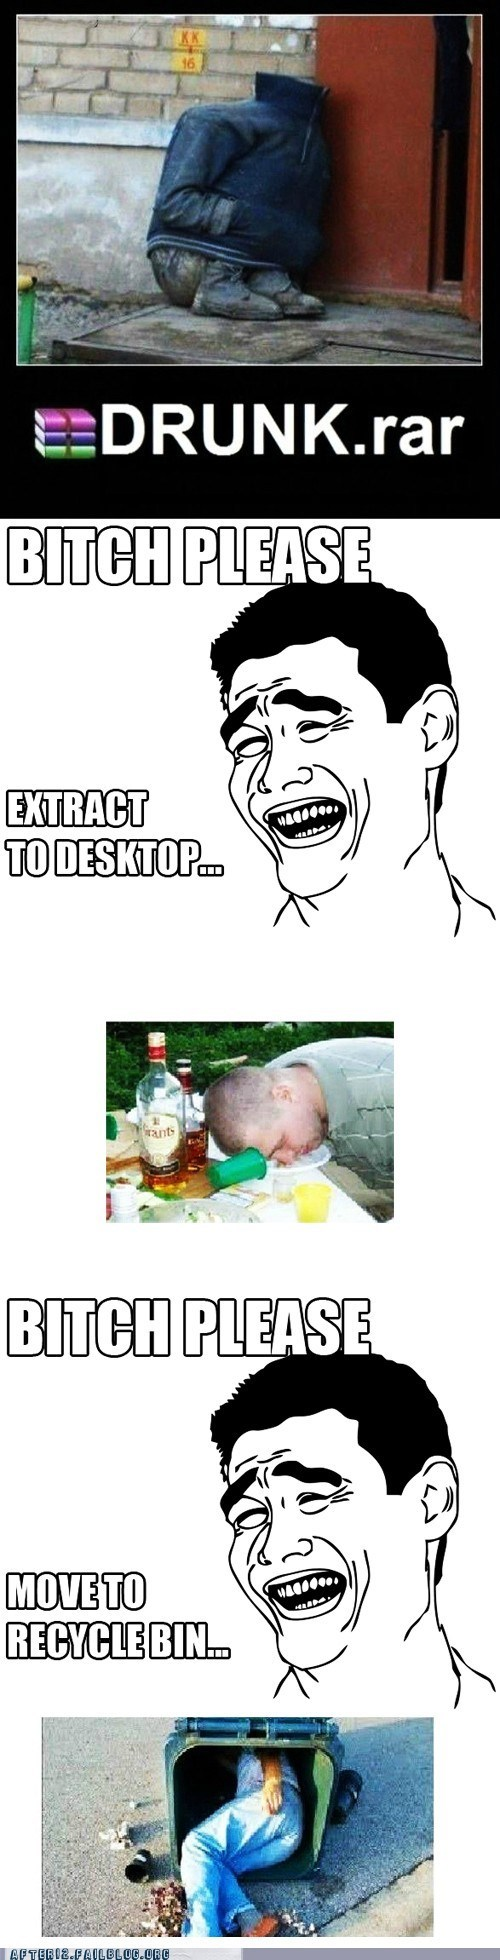 desktop drunk rar drunk.rar microsoft recycle bin windows WINRAR - 6456191488